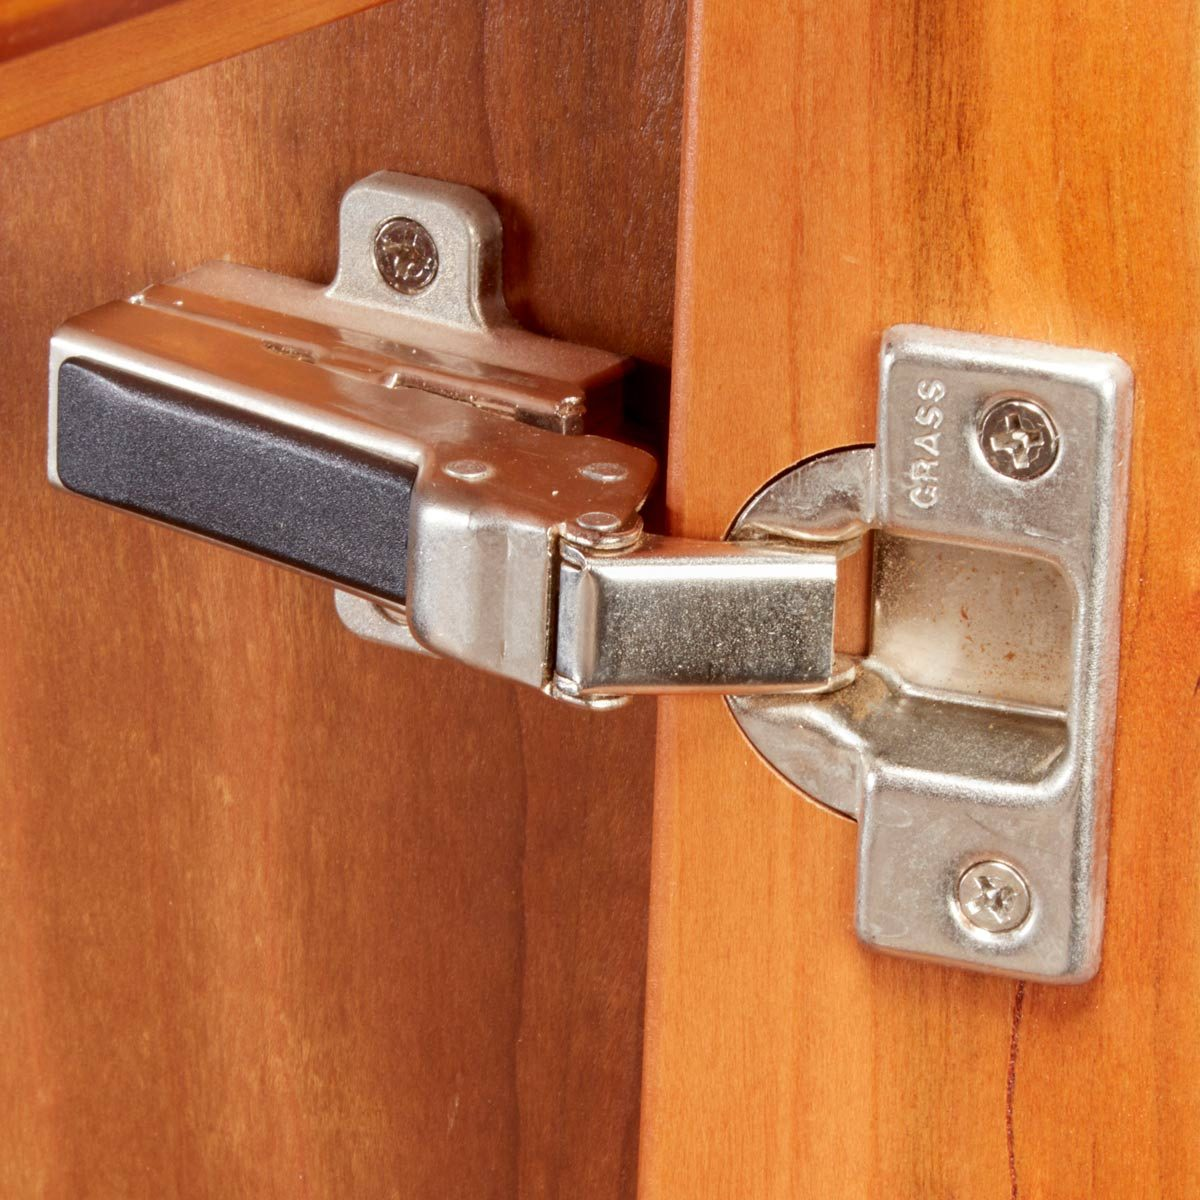 Choosing the Right Hinge